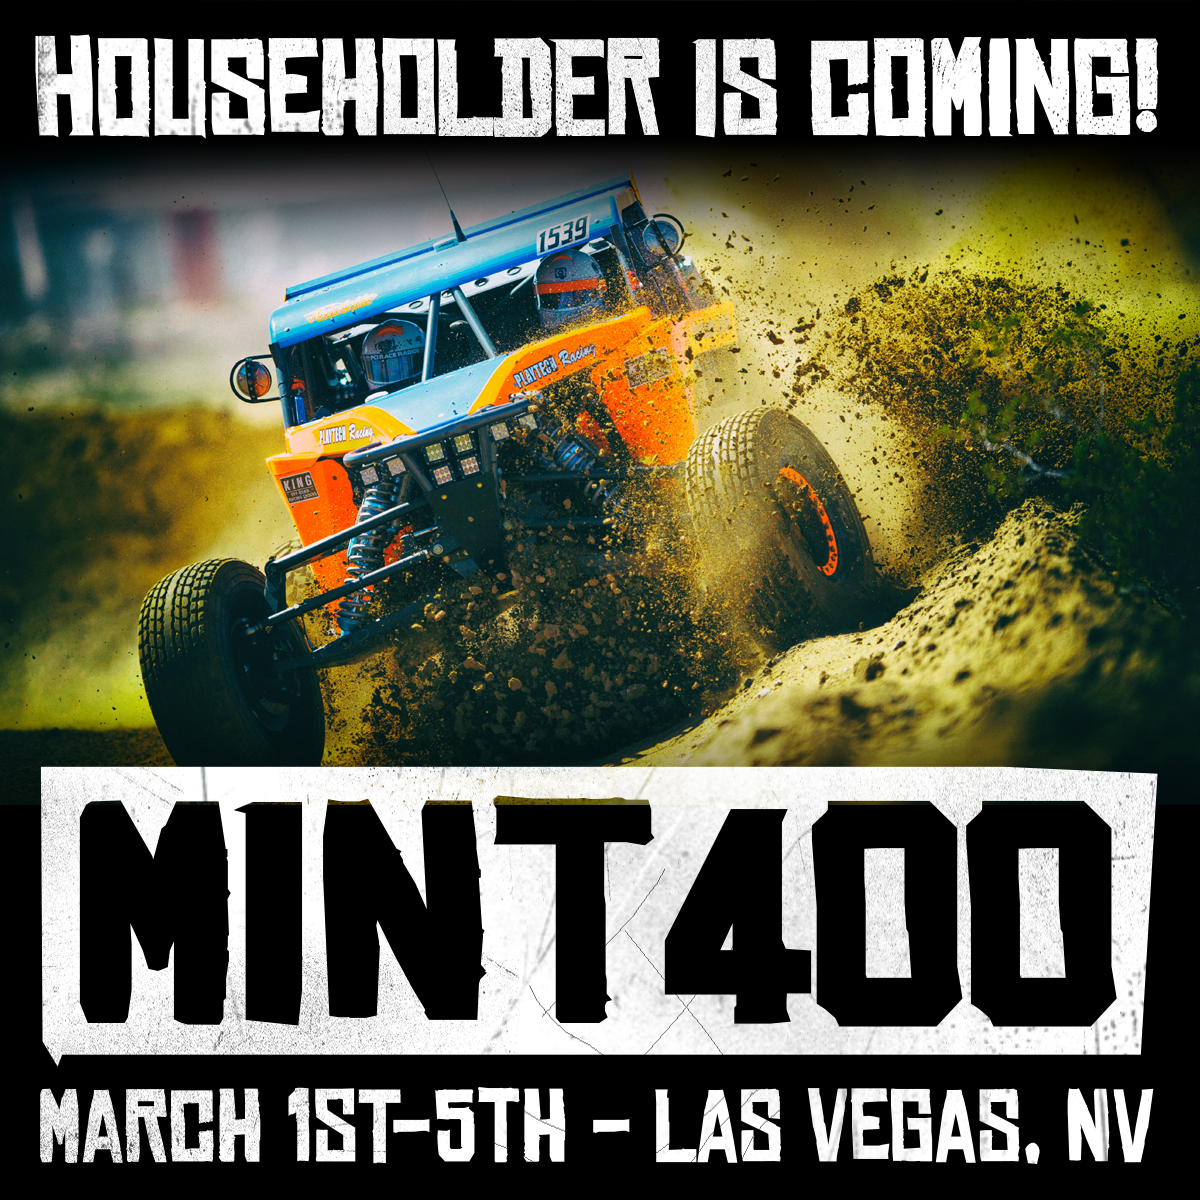 2017_mint_400_householder_is_coming.jpg